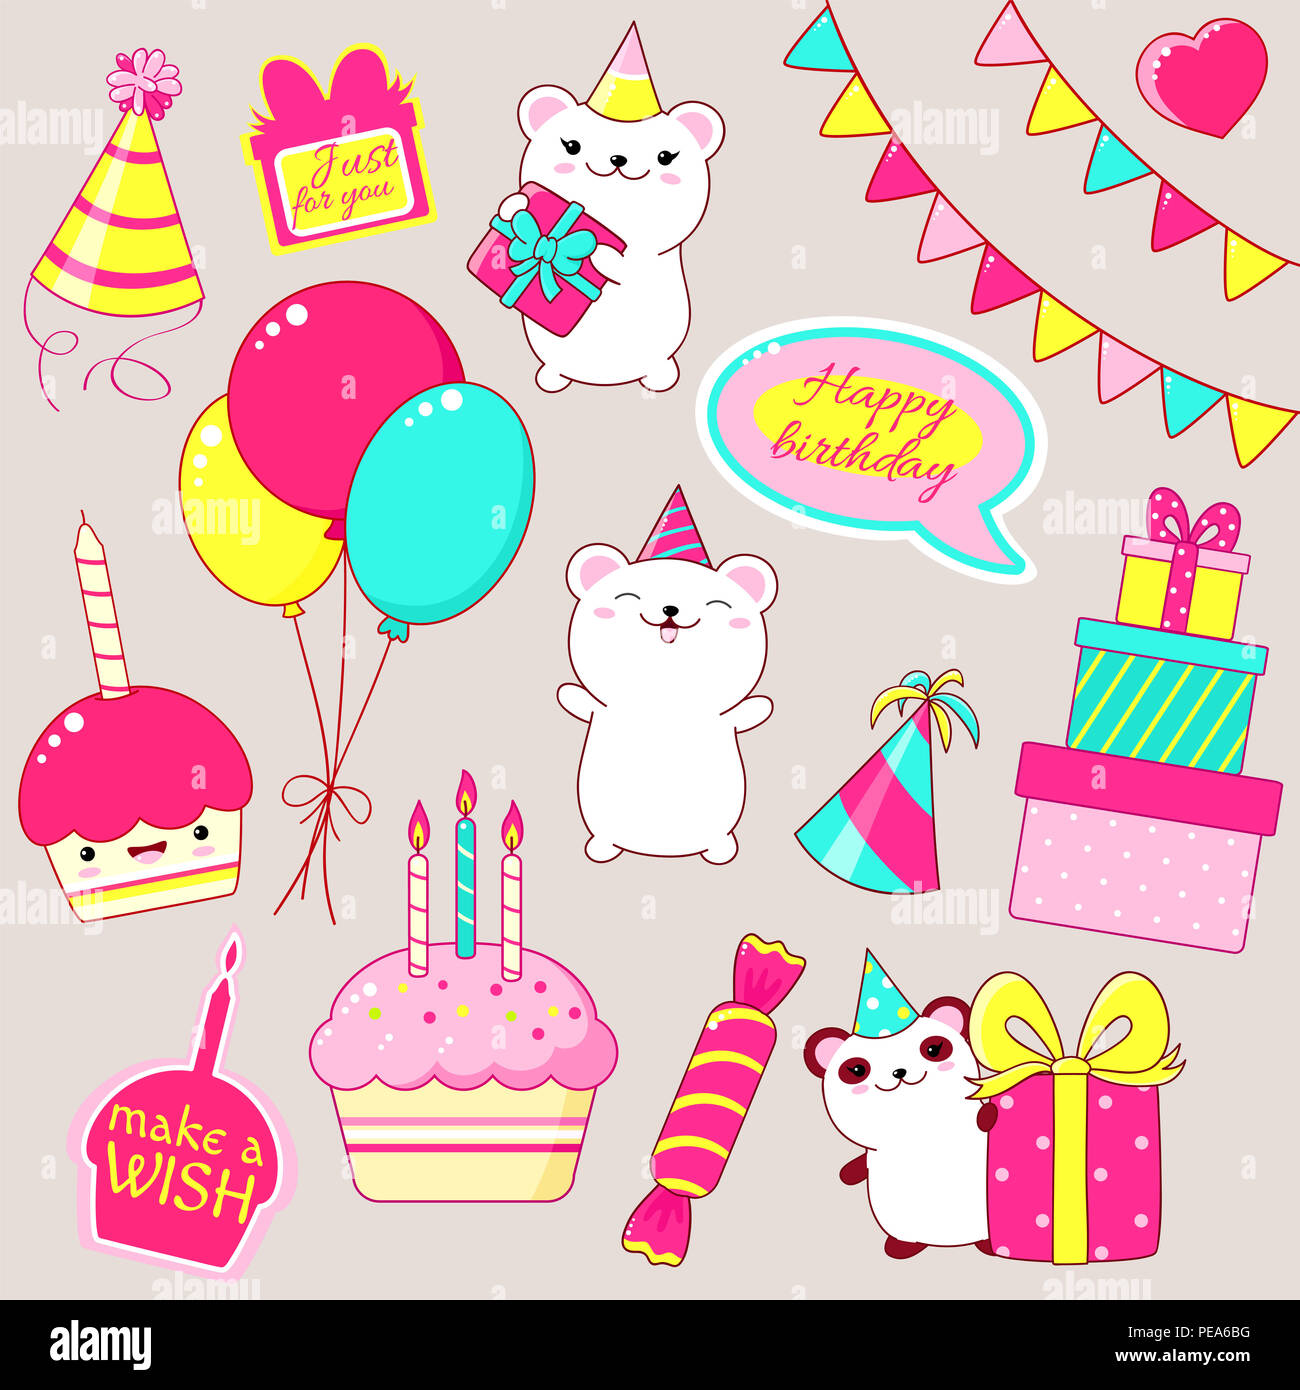 Set Of Cute Birthday Party Icons In Kawaii Style Polar Bear And Panda With Gift Cake Candles Flags Stack Gifts Candy Balloons Sticker W